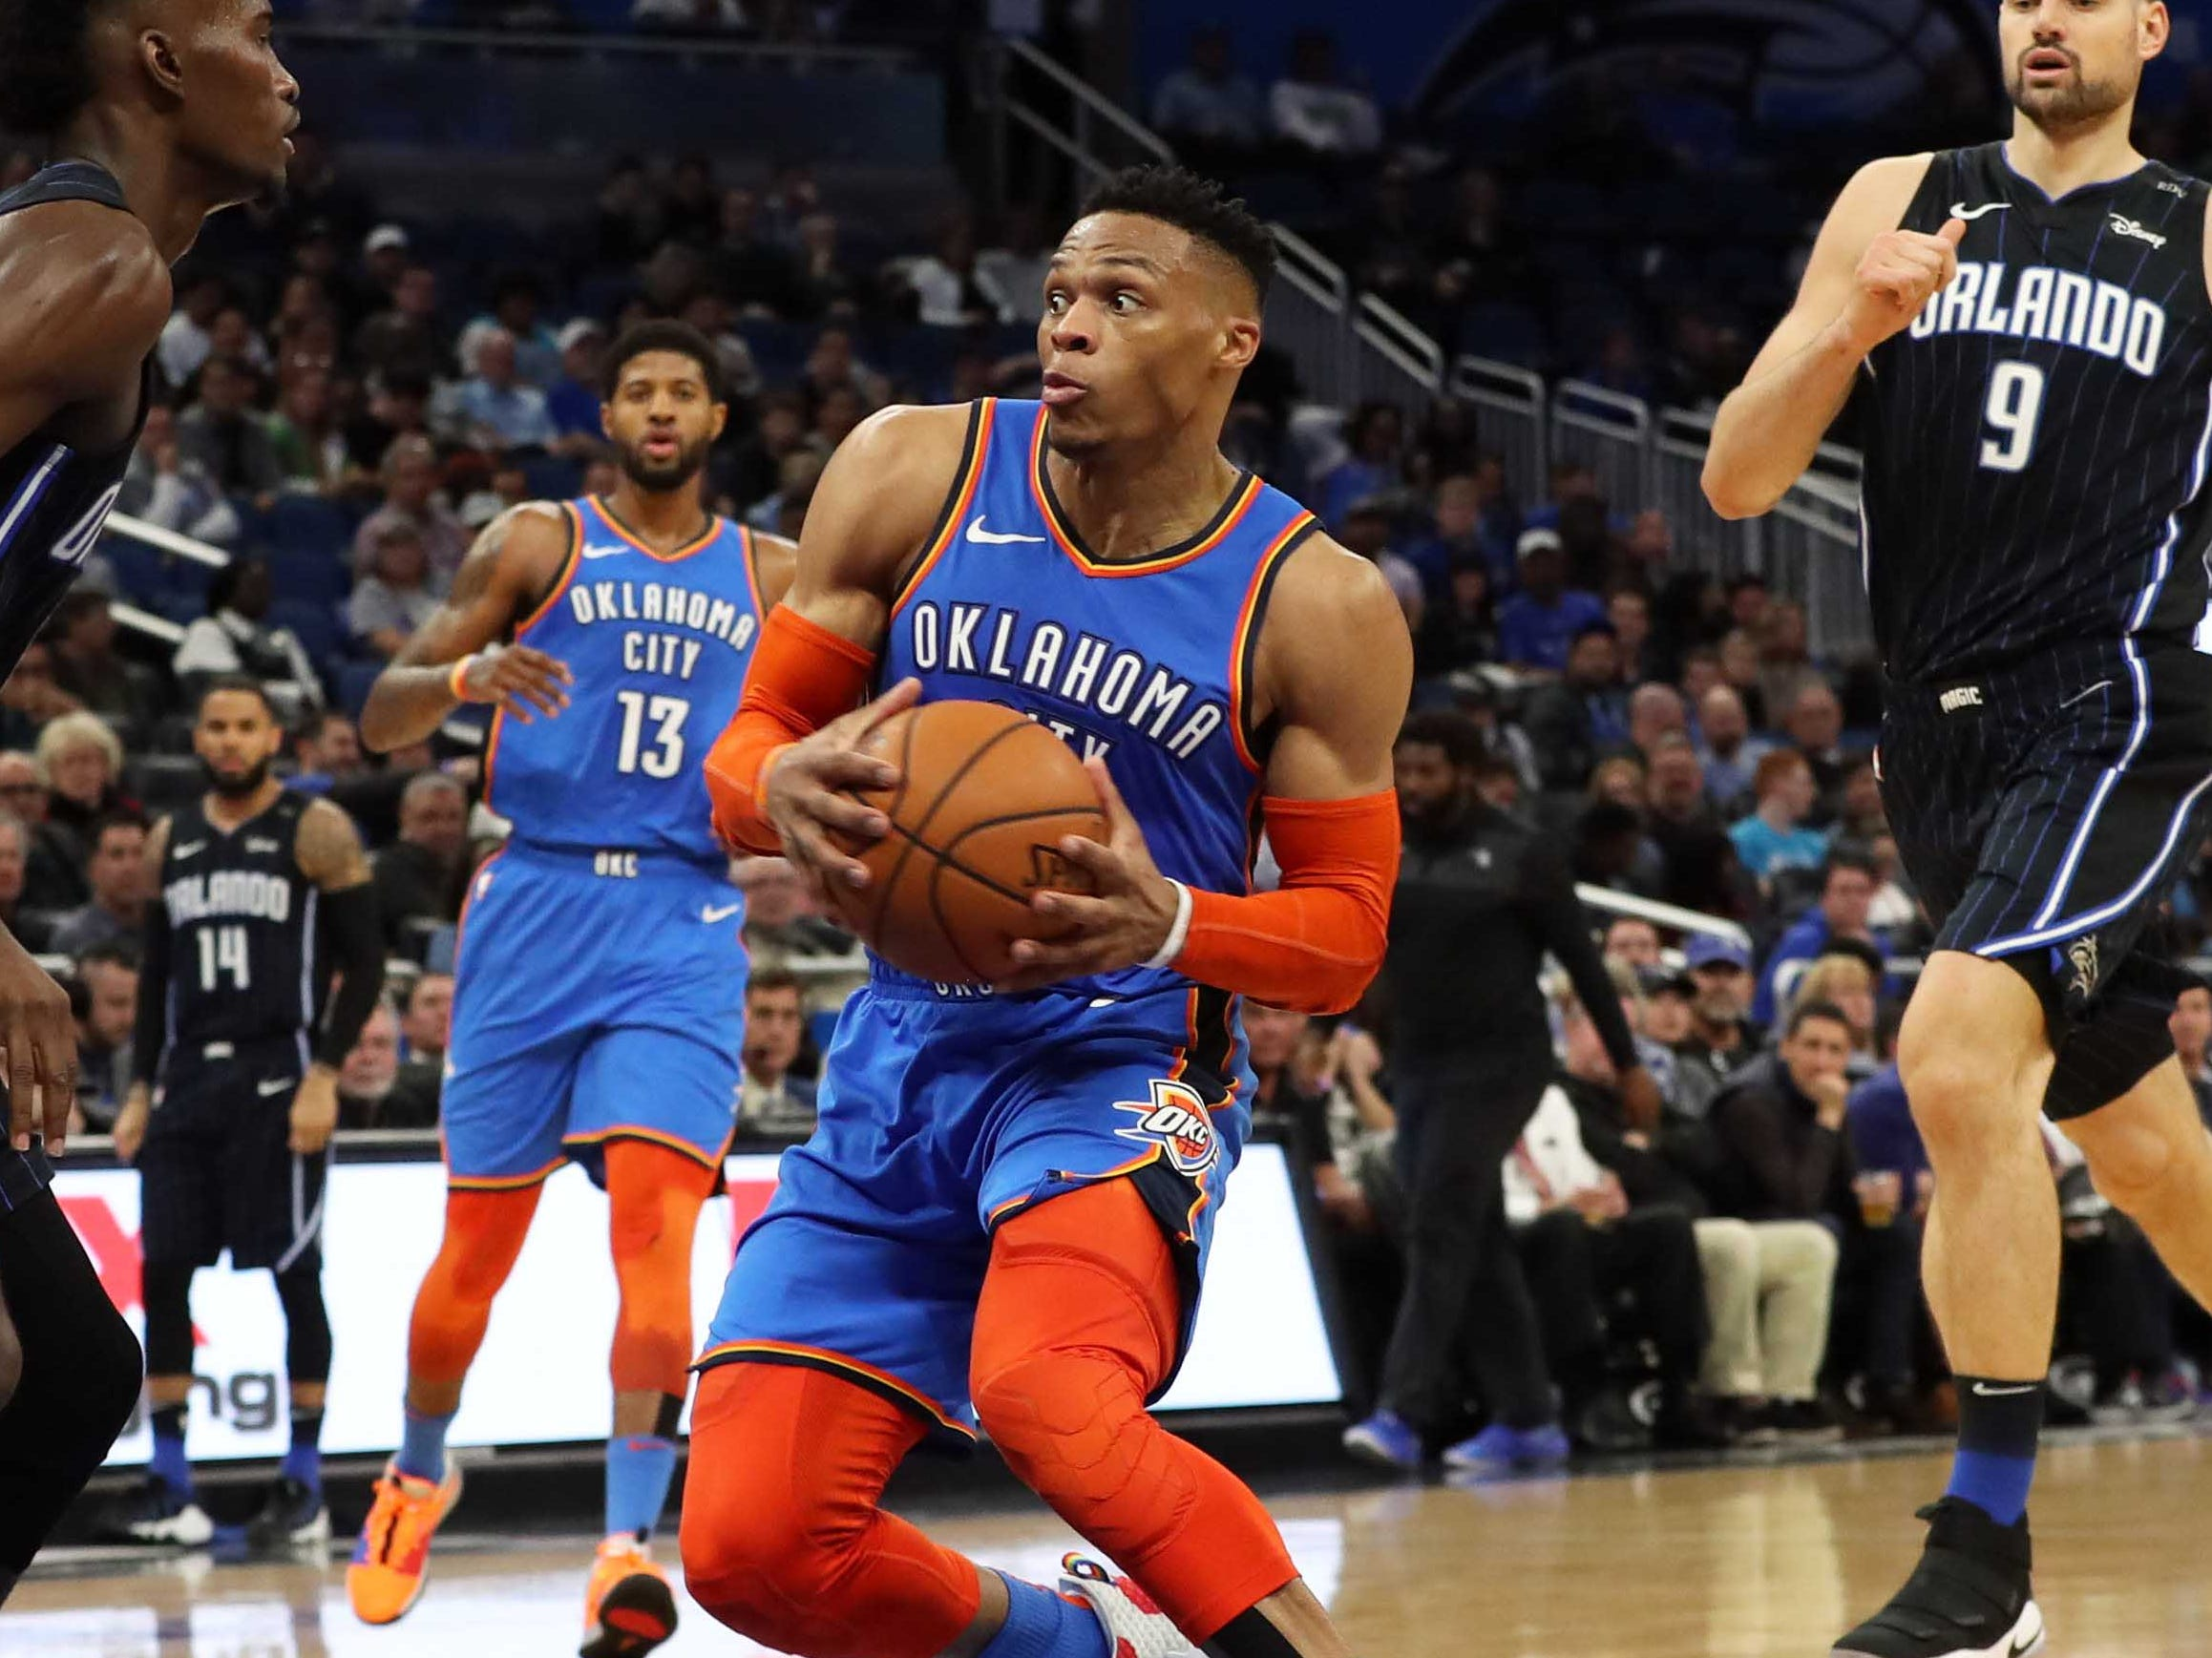 67. Russell Westbrook, Thunder (Jan. 29): 23 points, 14 rebounds, 14 assists in 126-117 win over Magic. (17th of season).